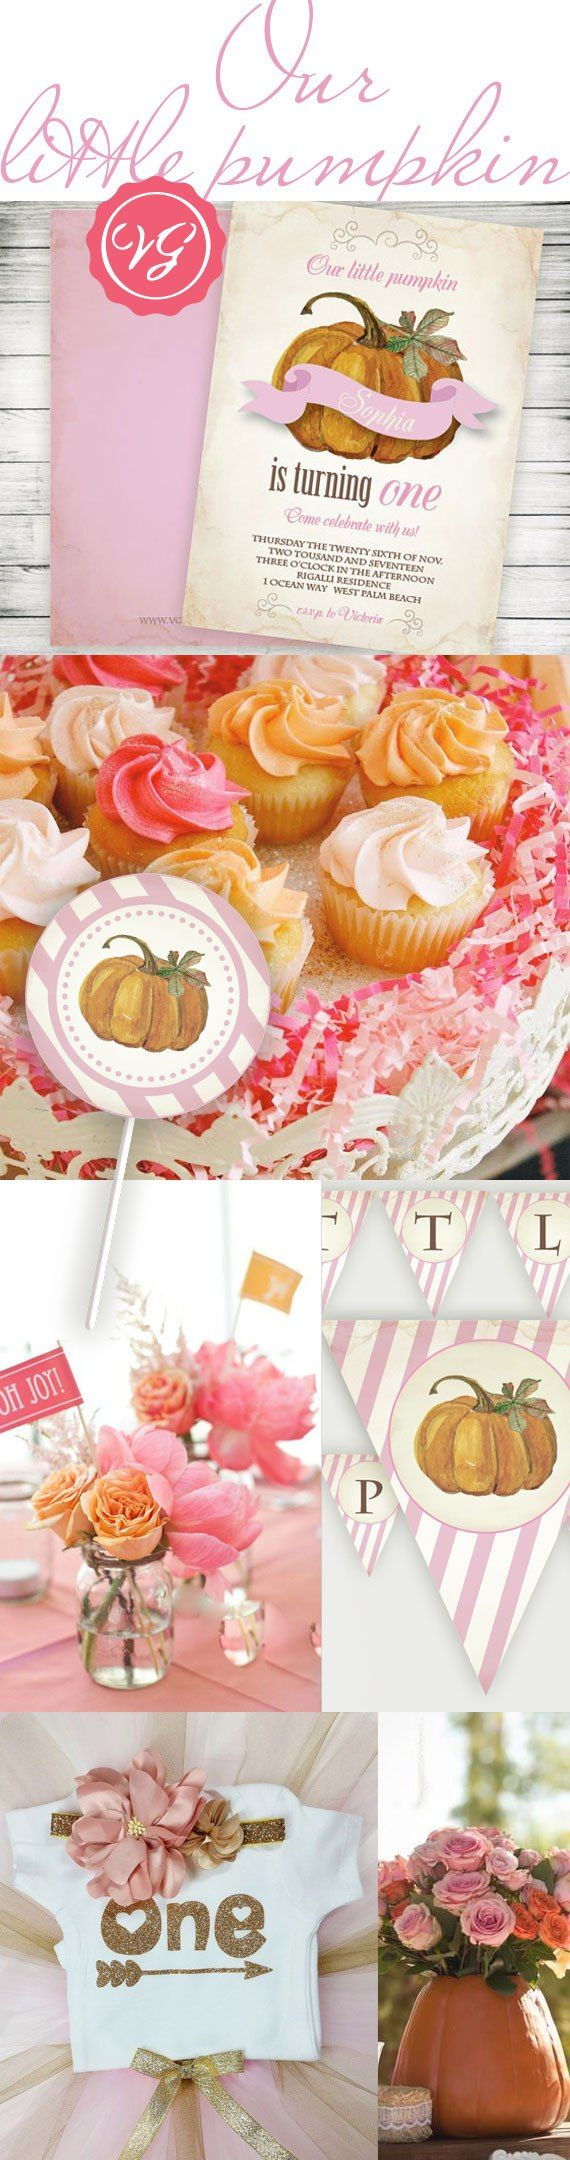 October Birthday Party Ideas - Girl's First Birthday